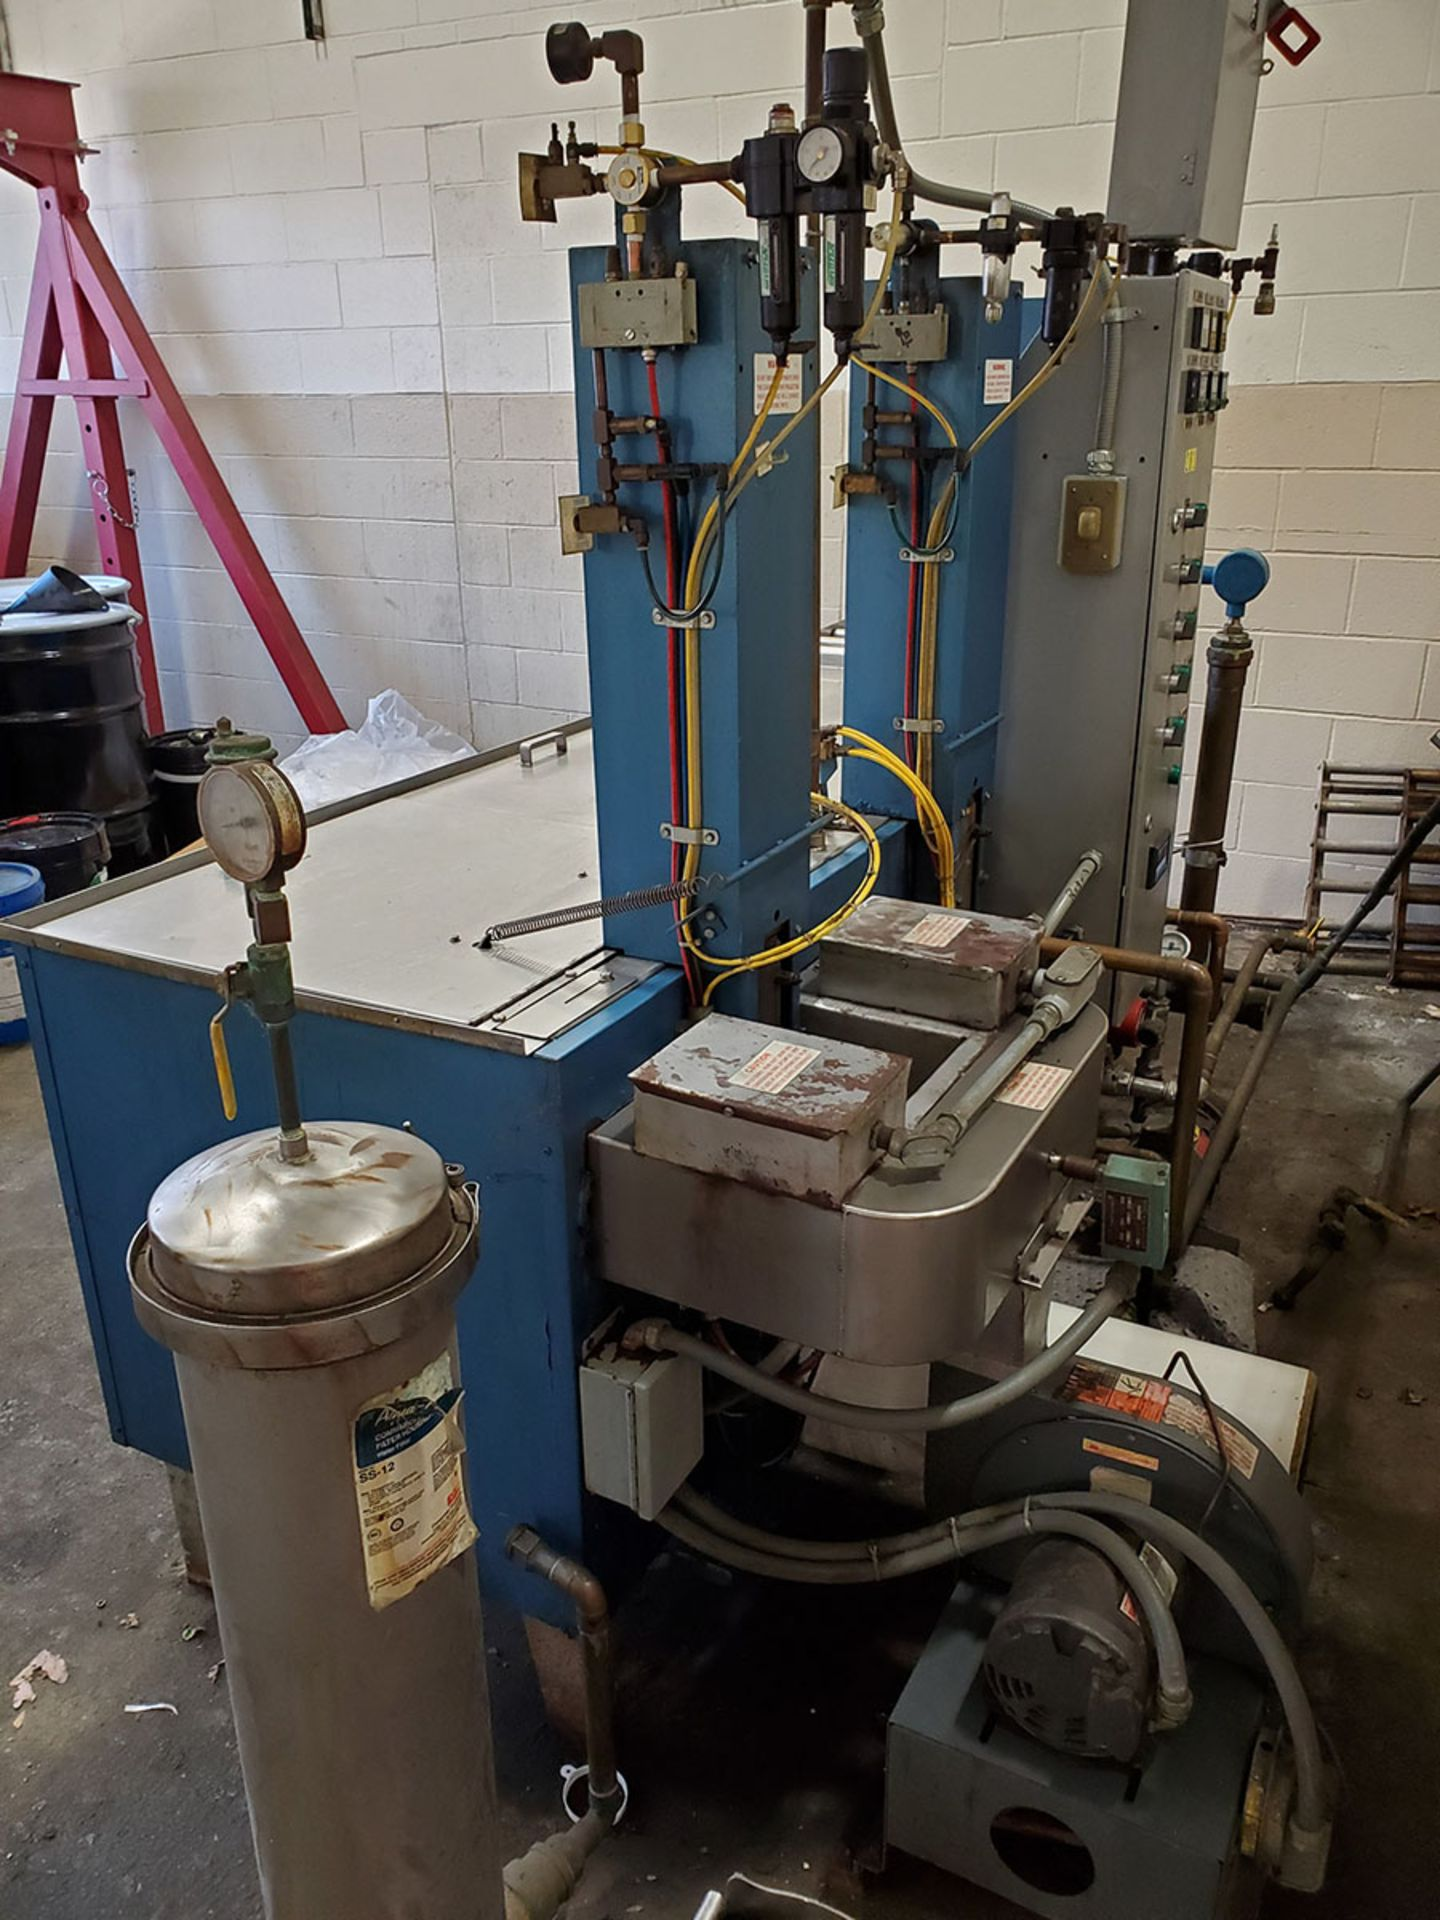 Lot 193 - RAMCO PARTS WASHER WITH WASH TANKS, RINSE TANK, AND DRYER